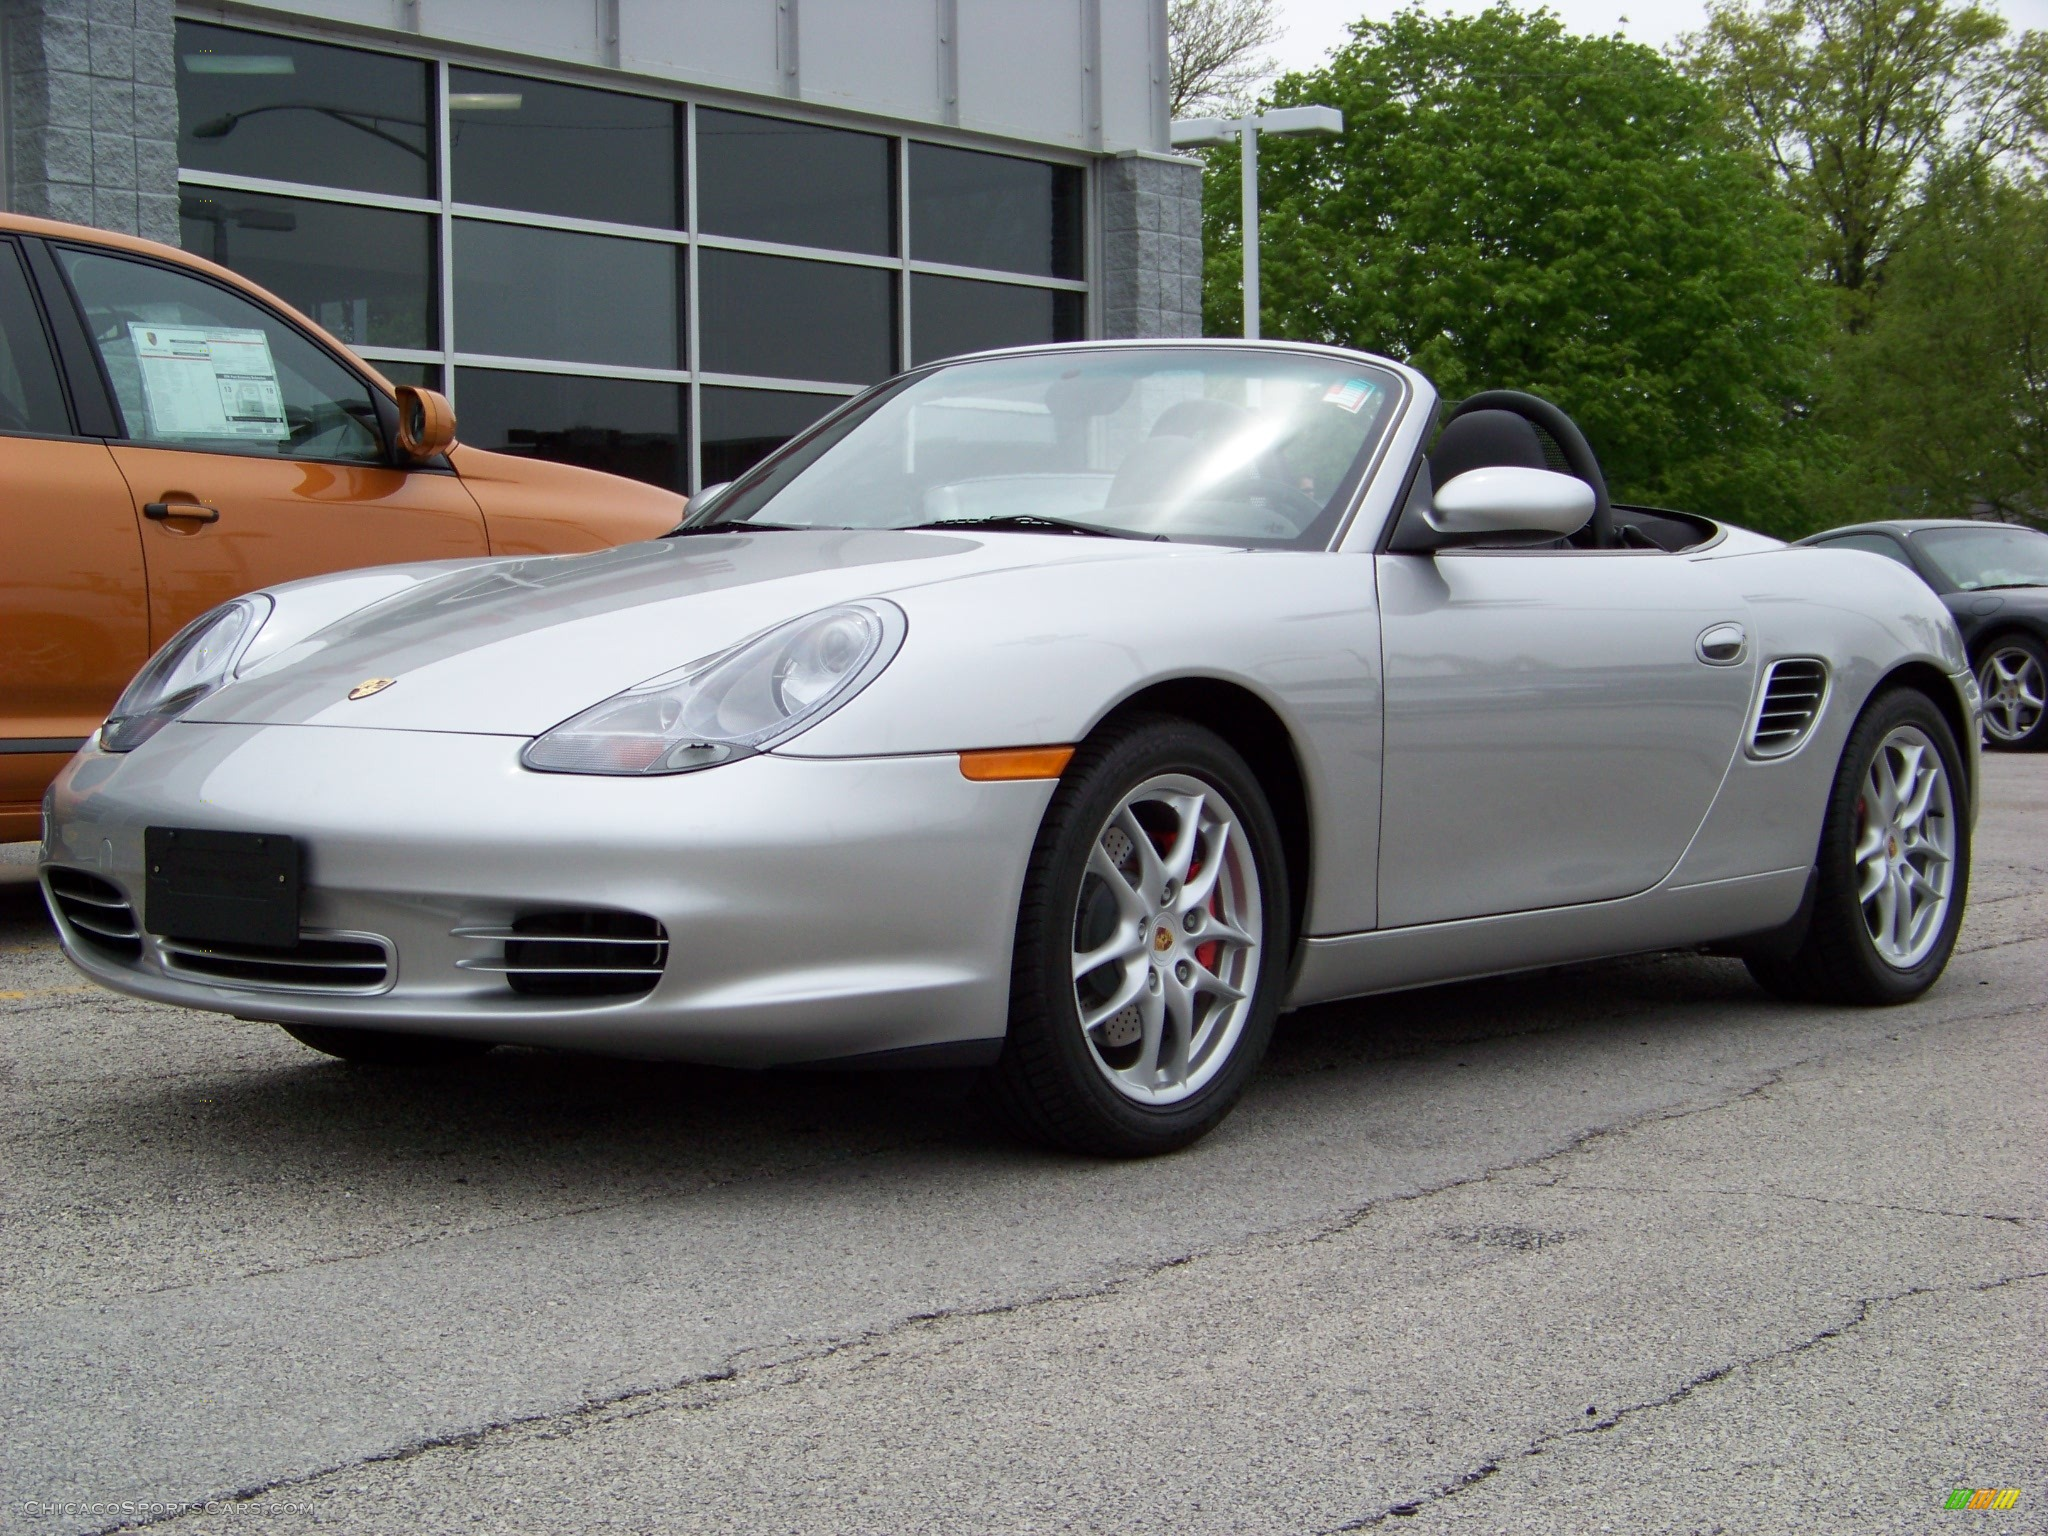 2004 porsche boxster s in silver 660217. Black Bedroom Furniture Sets. Home Design Ideas